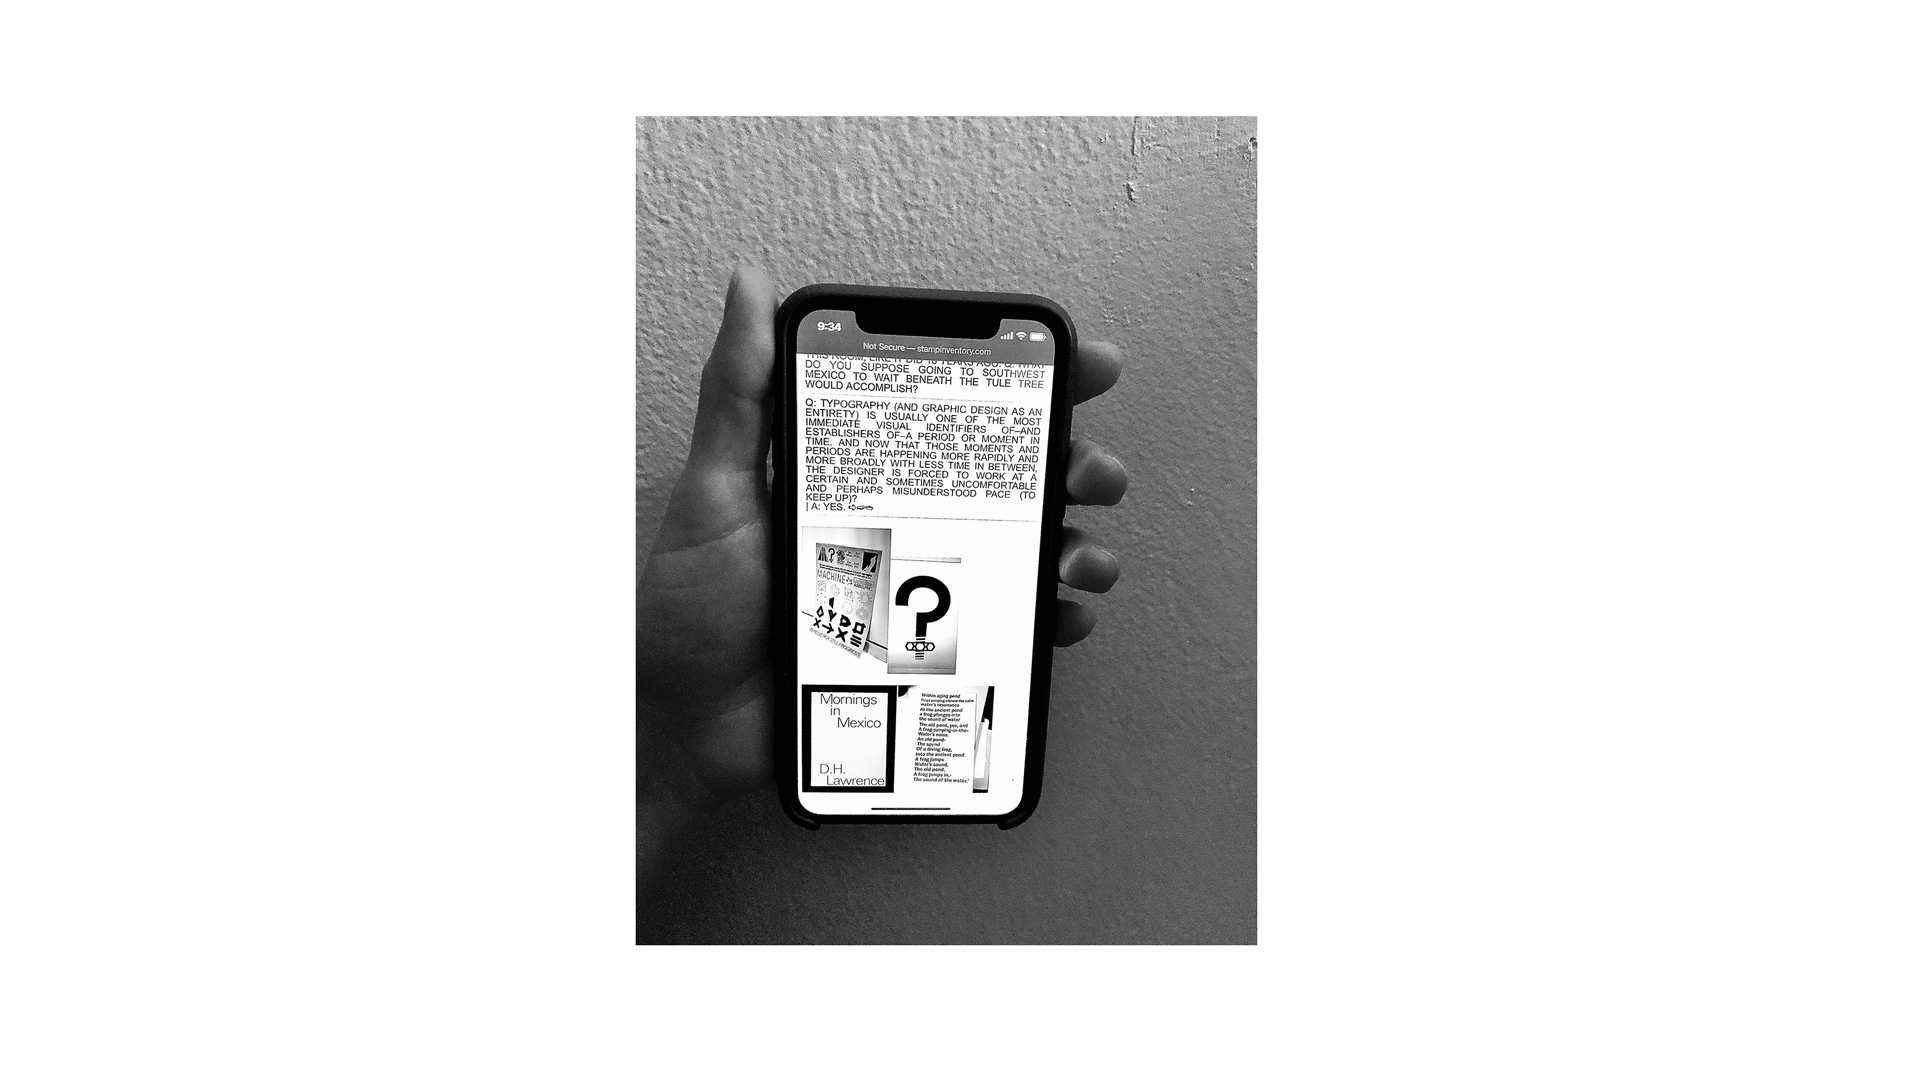 iphone app designed by Bronson Stamp